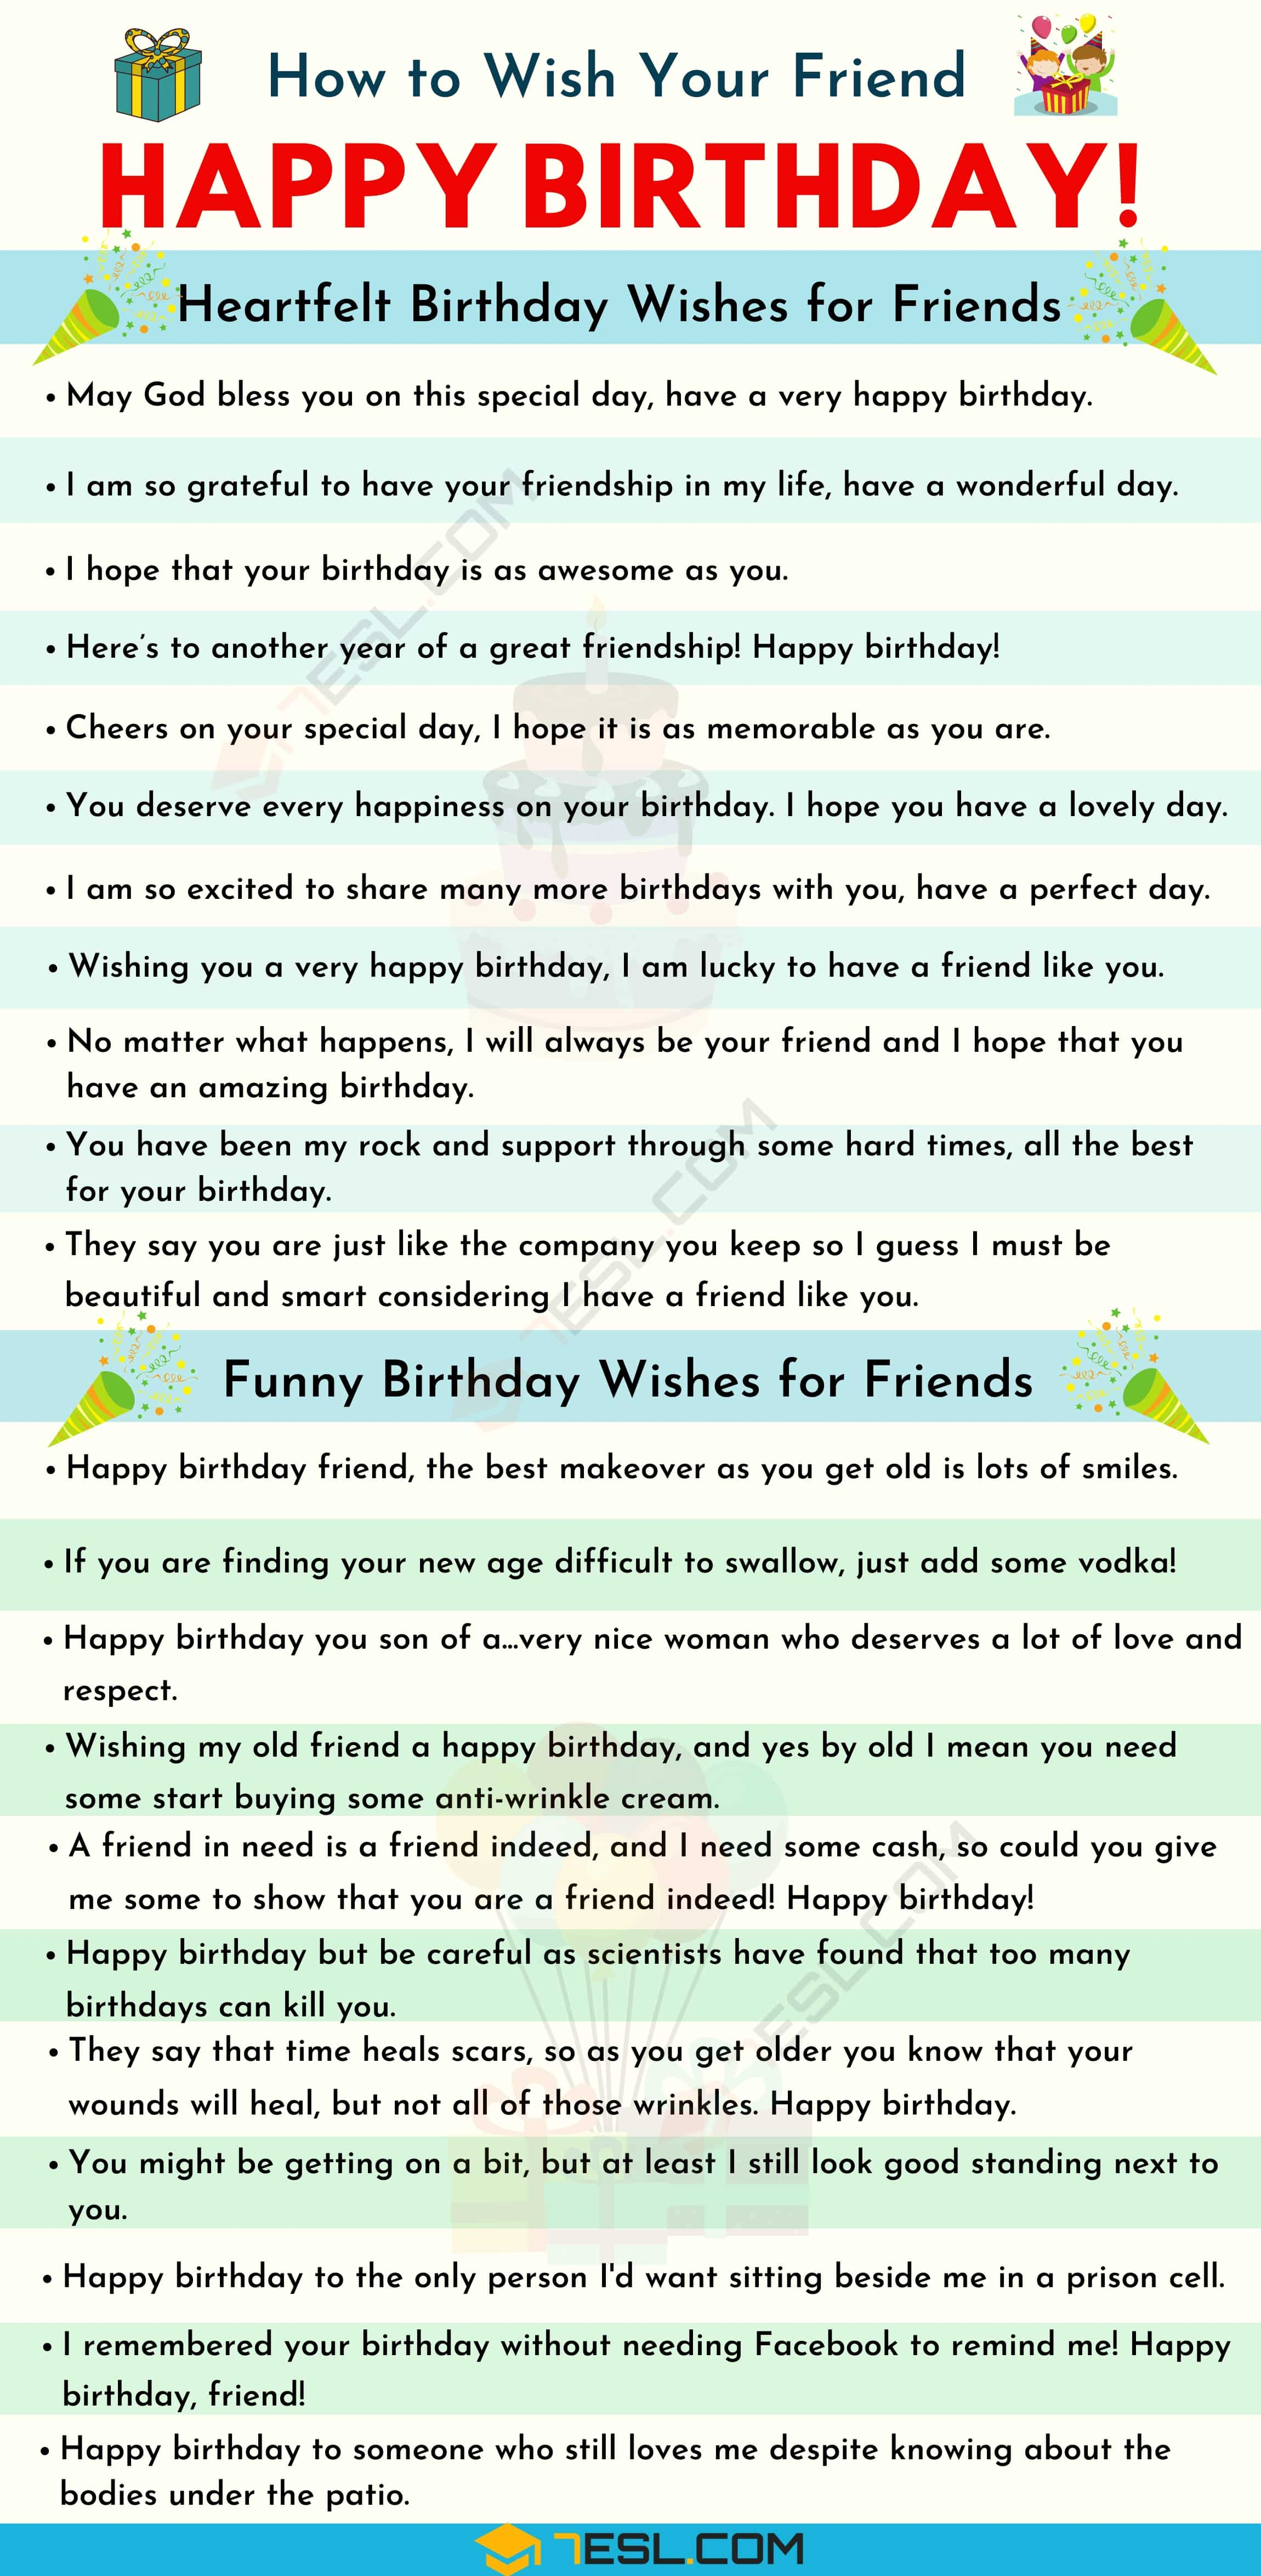 Funny Letter To Best Friend On Her Birthday : funny, letter, friend, birthday, Happy, Birthday, Friend:, Heartfelt, Funny, Wishes, Friends